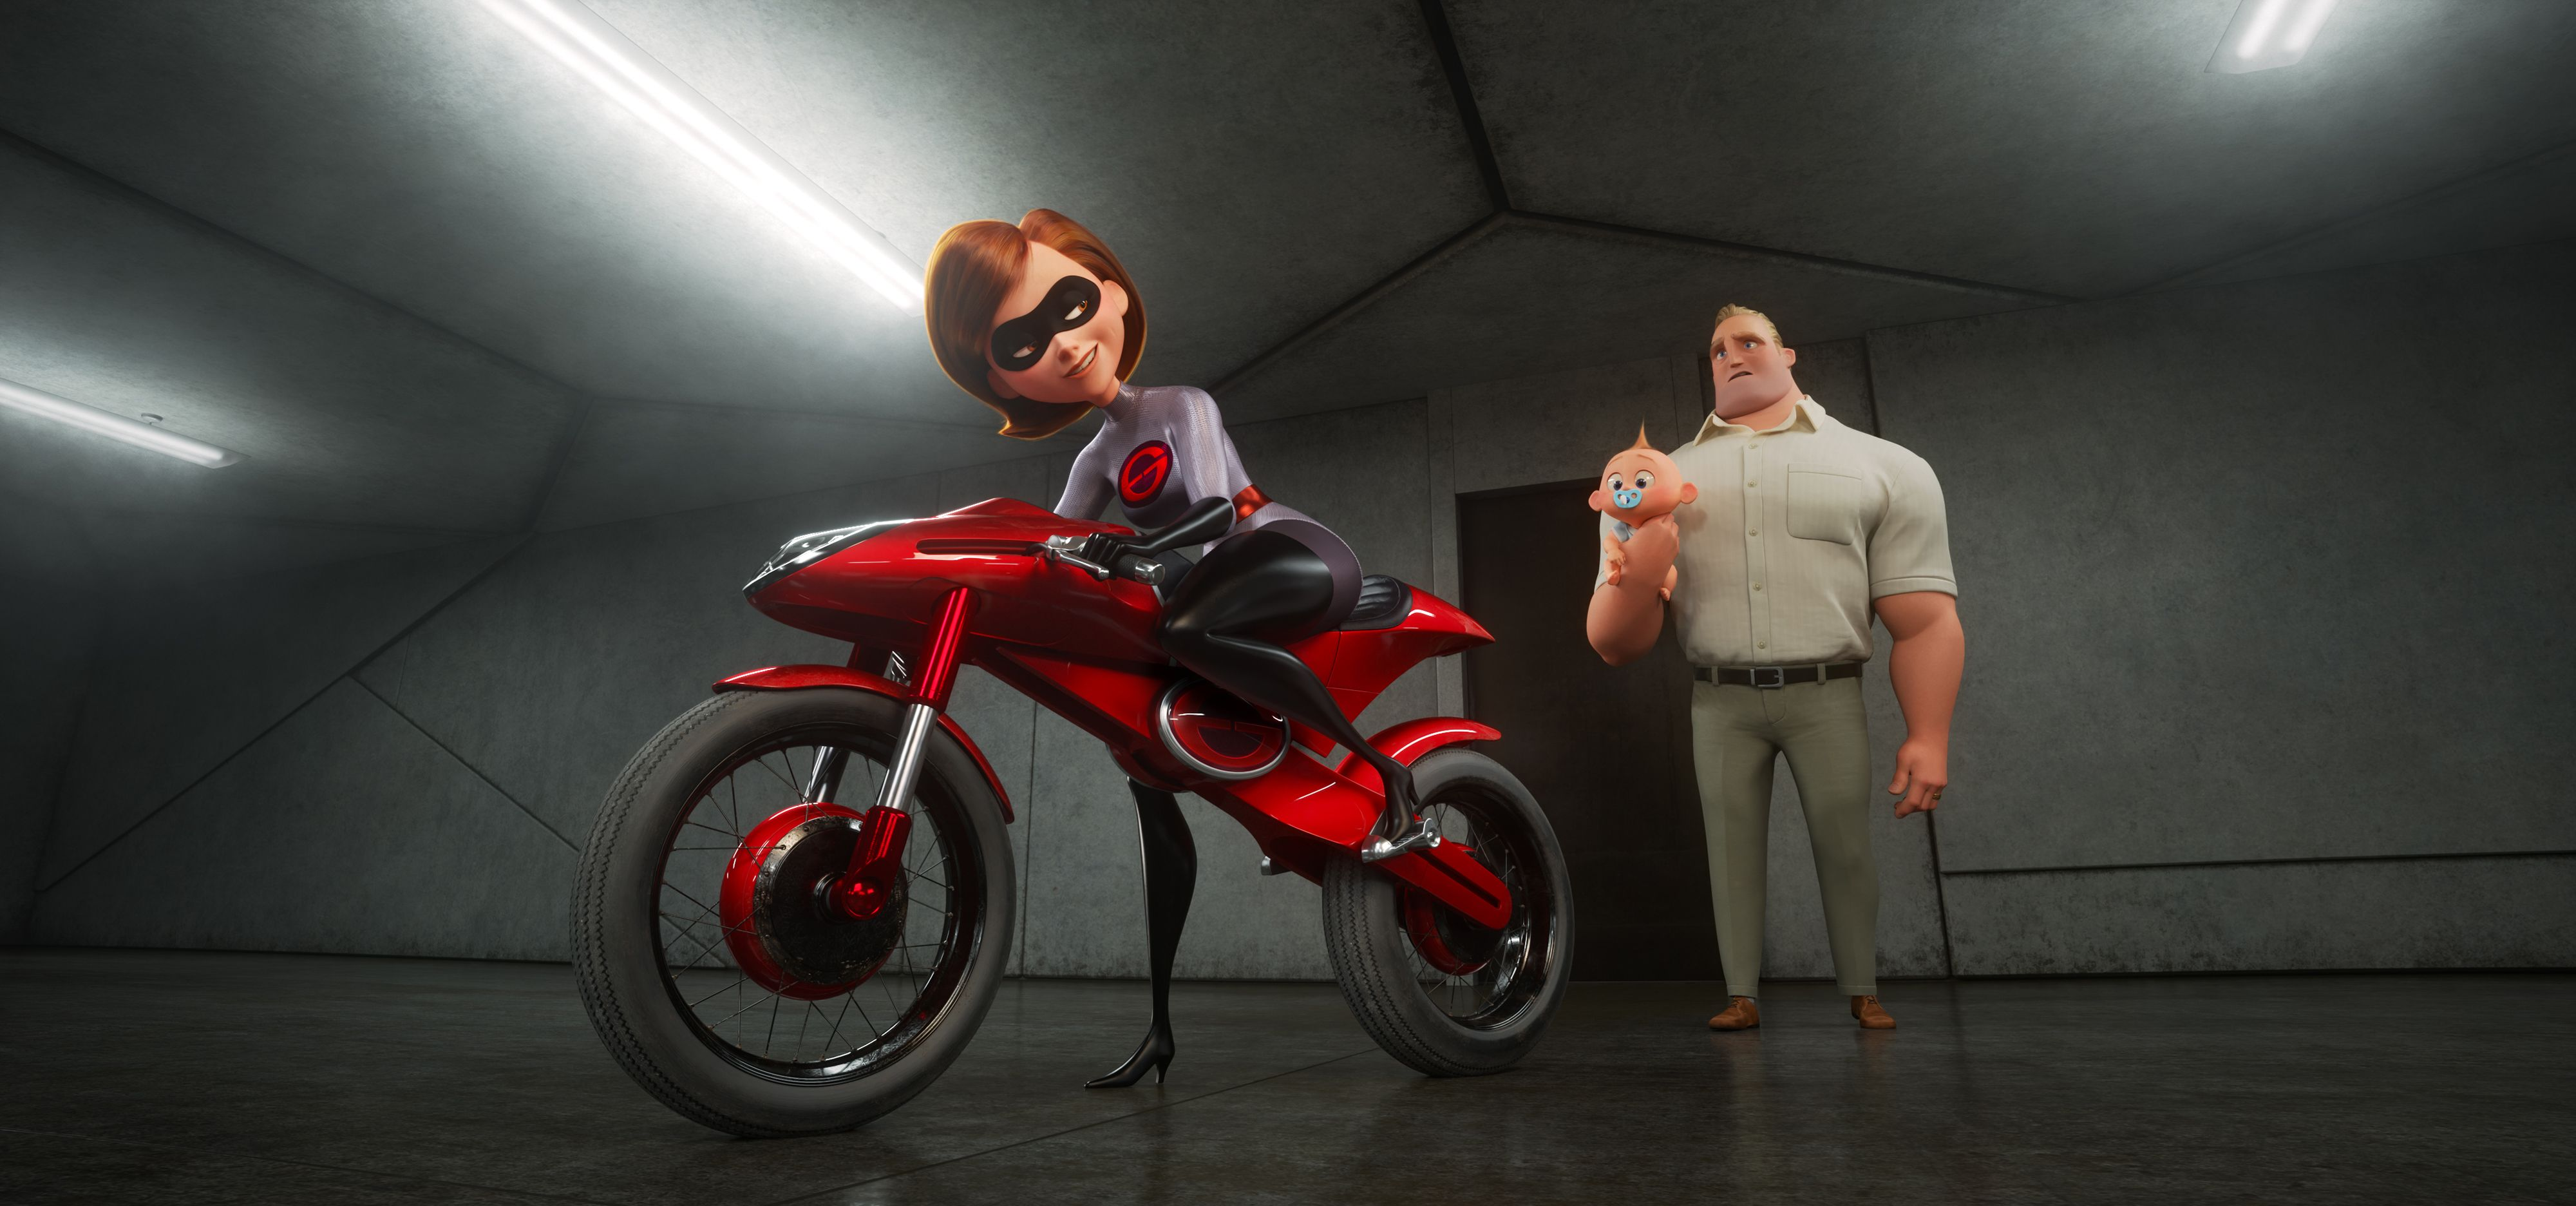 Hd Wallpapers 1080p Nature Animated 1920x1080 Elastigirl And Mr Incredible In The Incredibles